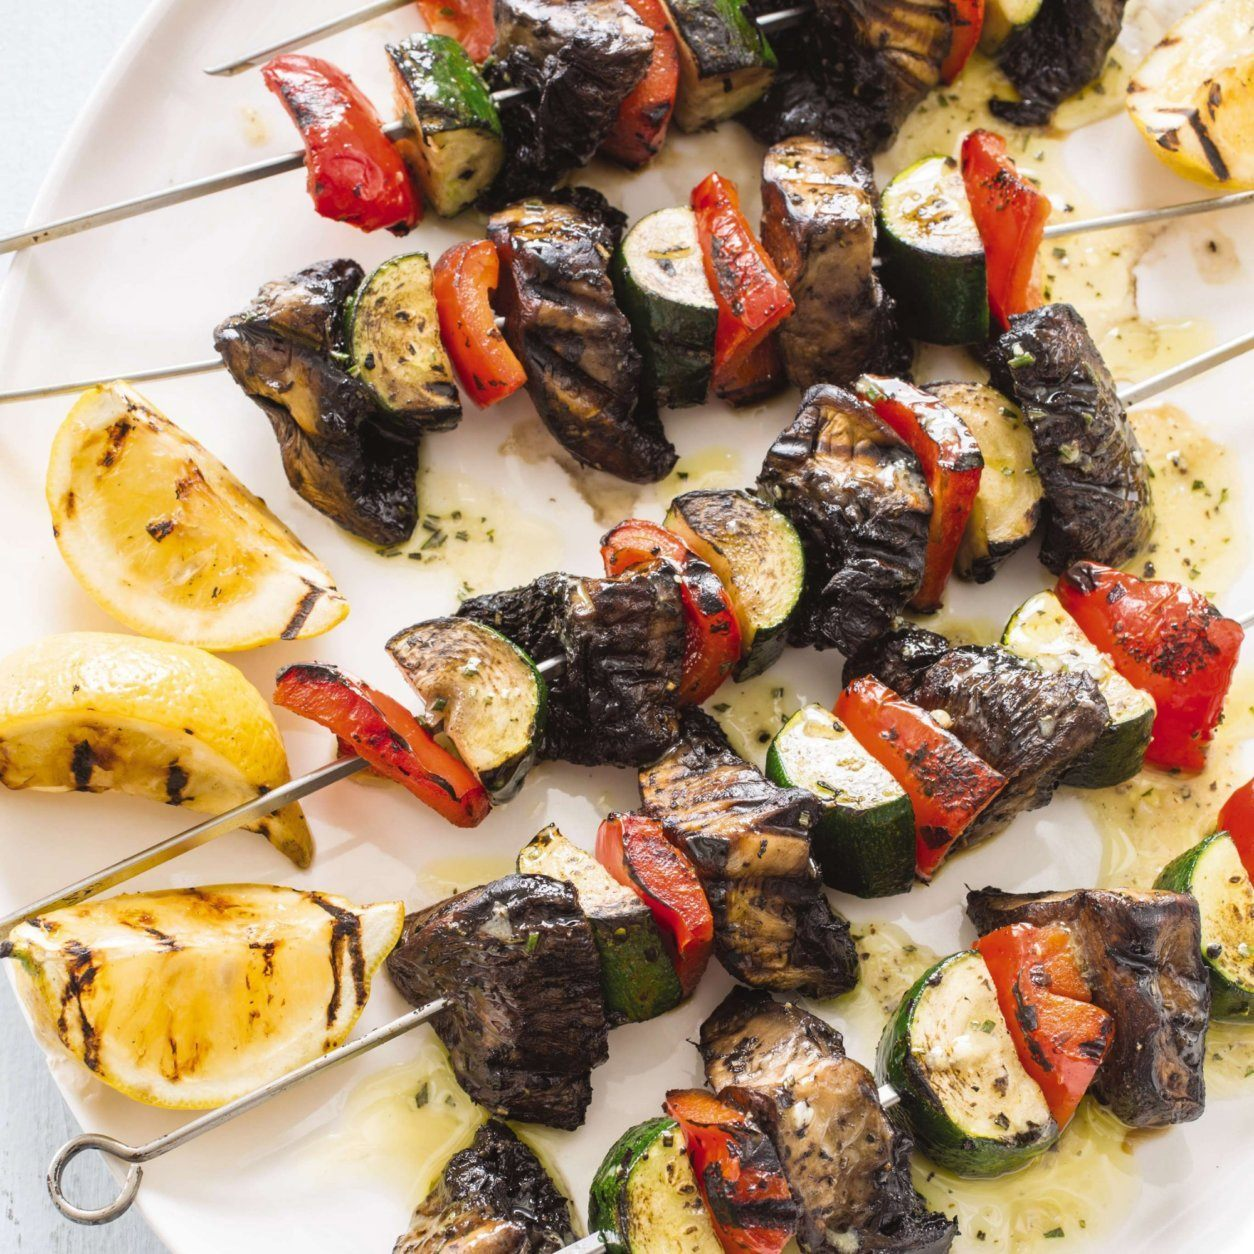 """This undated photo provided by America's Test Kitchen in May 2019 shows Grilled Vegetable Kebabs in Brookline, Mass. This recipe appears in the cookbook """"Master of the Grill."""" (Daniel J. van Ackere/America's Test Kitchen via AP)"""